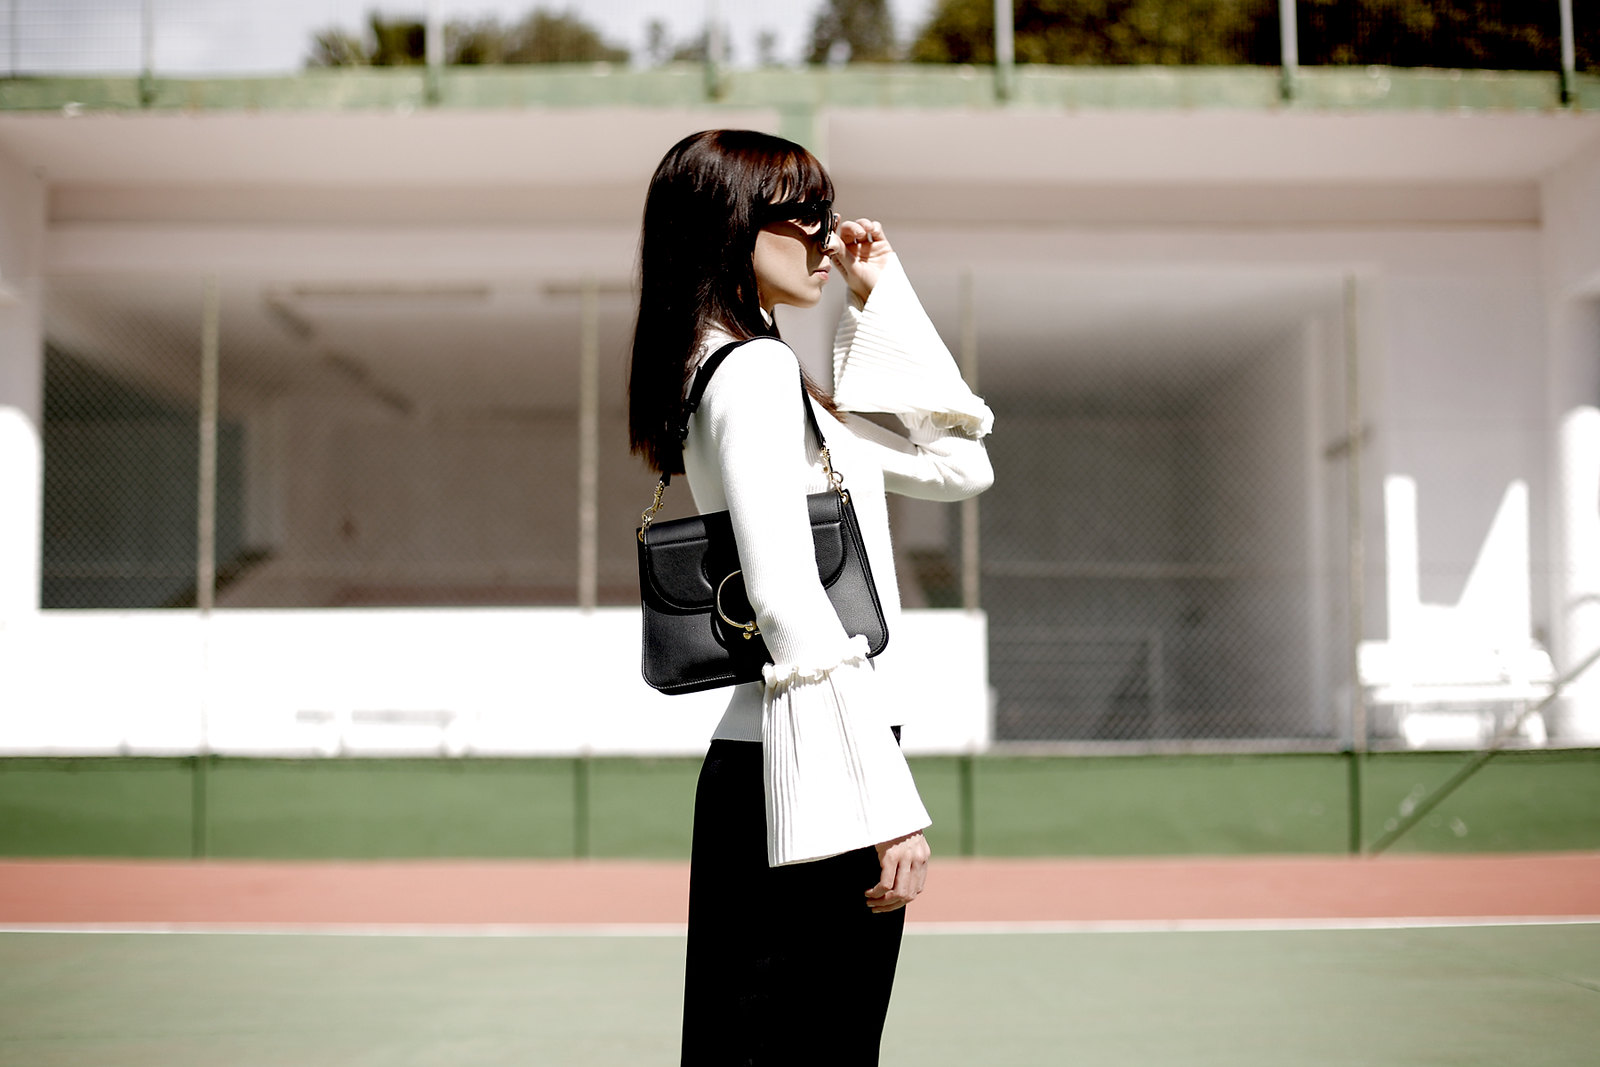 tennis edgy styling editorial photography chicwish white knit bell sleeves silk pants summer heat style céline audrey sunglasses j.w.anderson pierce bag zara sandals shadows fashionblogger outfit ootd modeblog cats & dogs ricarda schernus düsseldorf 6